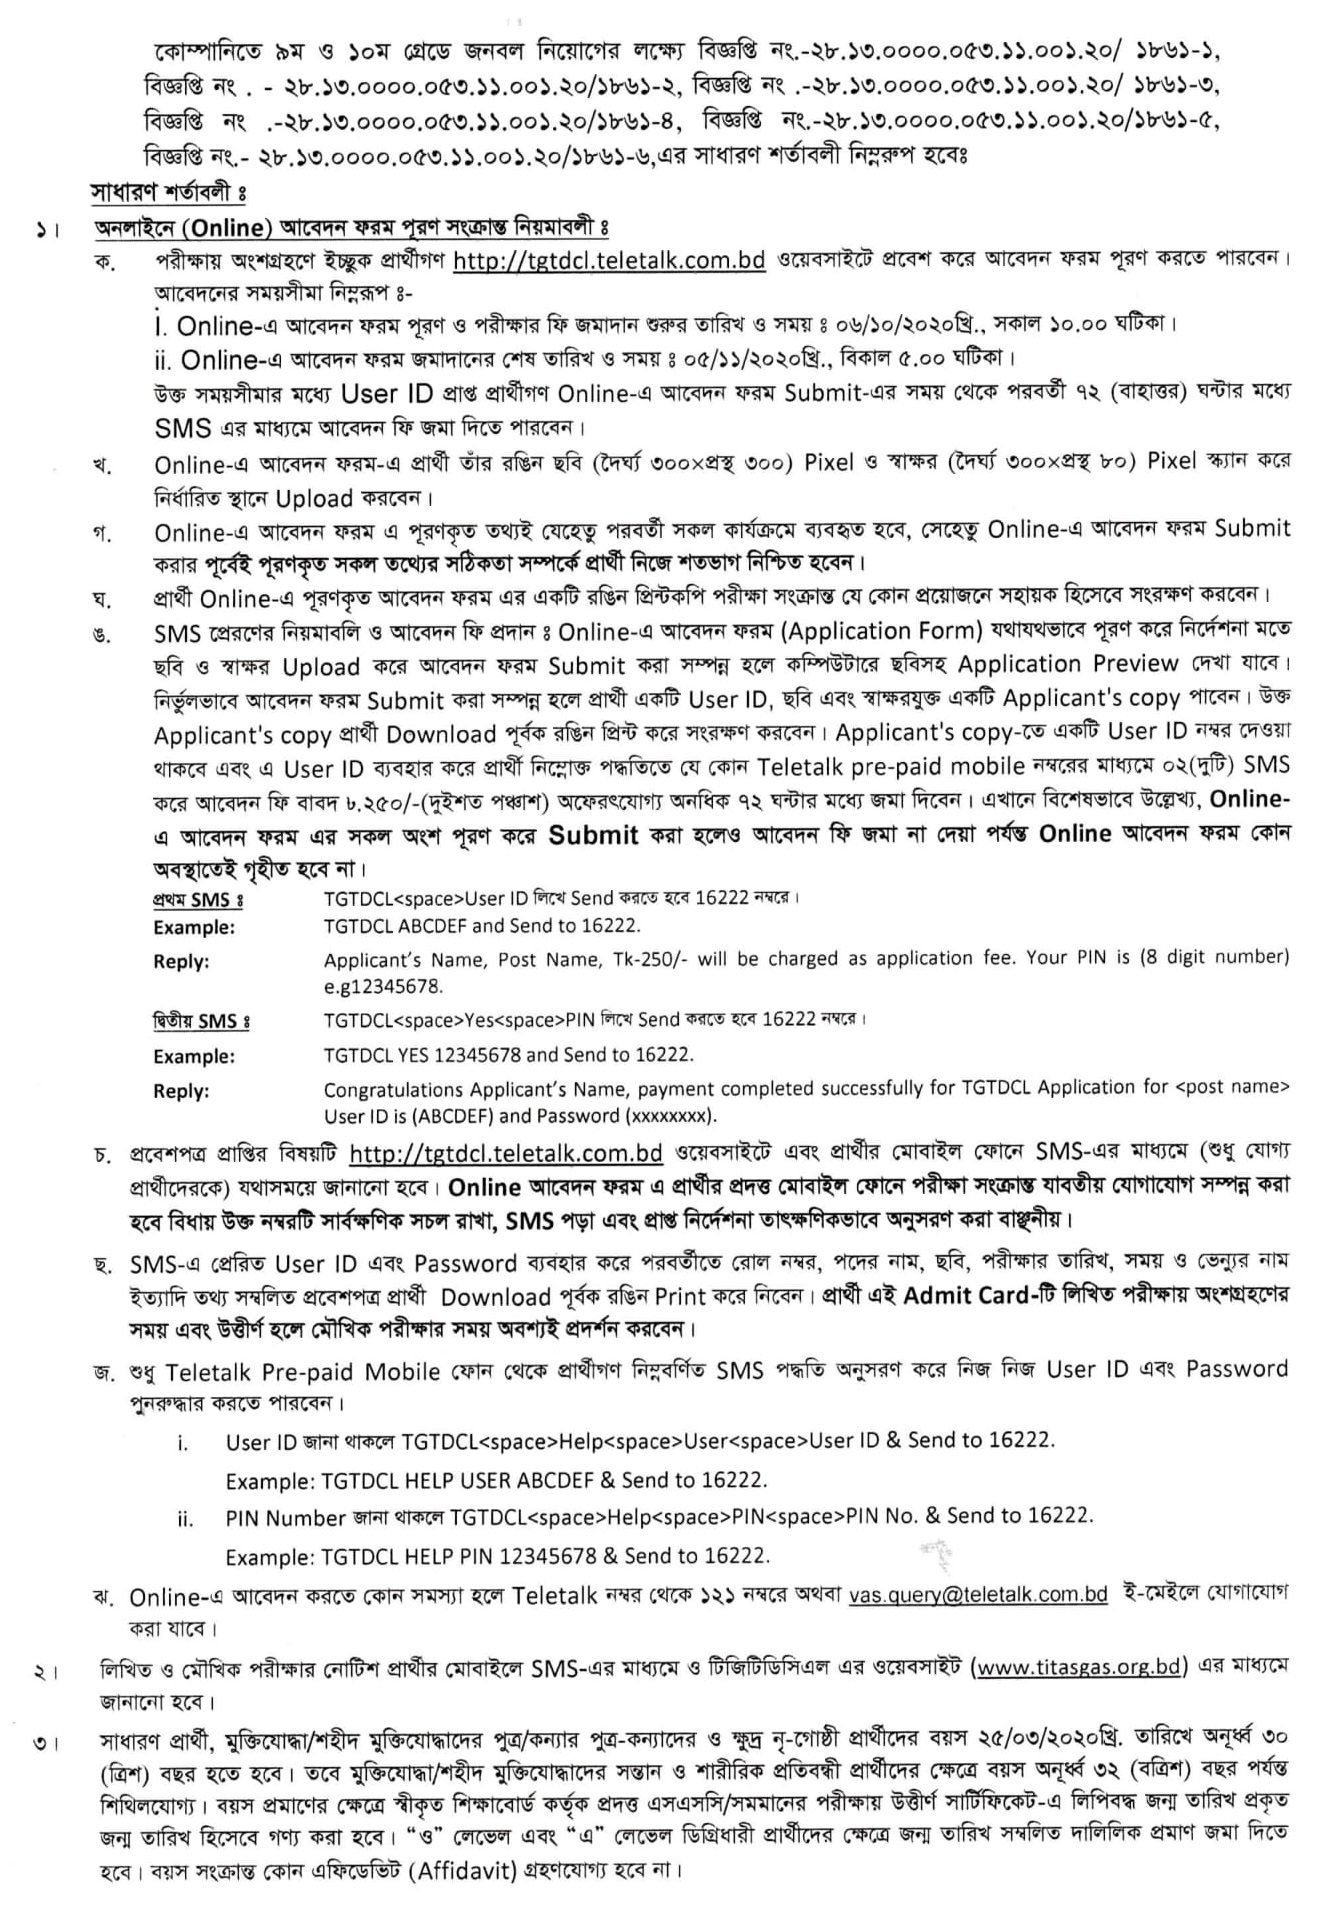 Titas-Gas-Transmission-and-Distribution-Company-Limited-TGTDCL-Job-Circular-2020-PDF-7